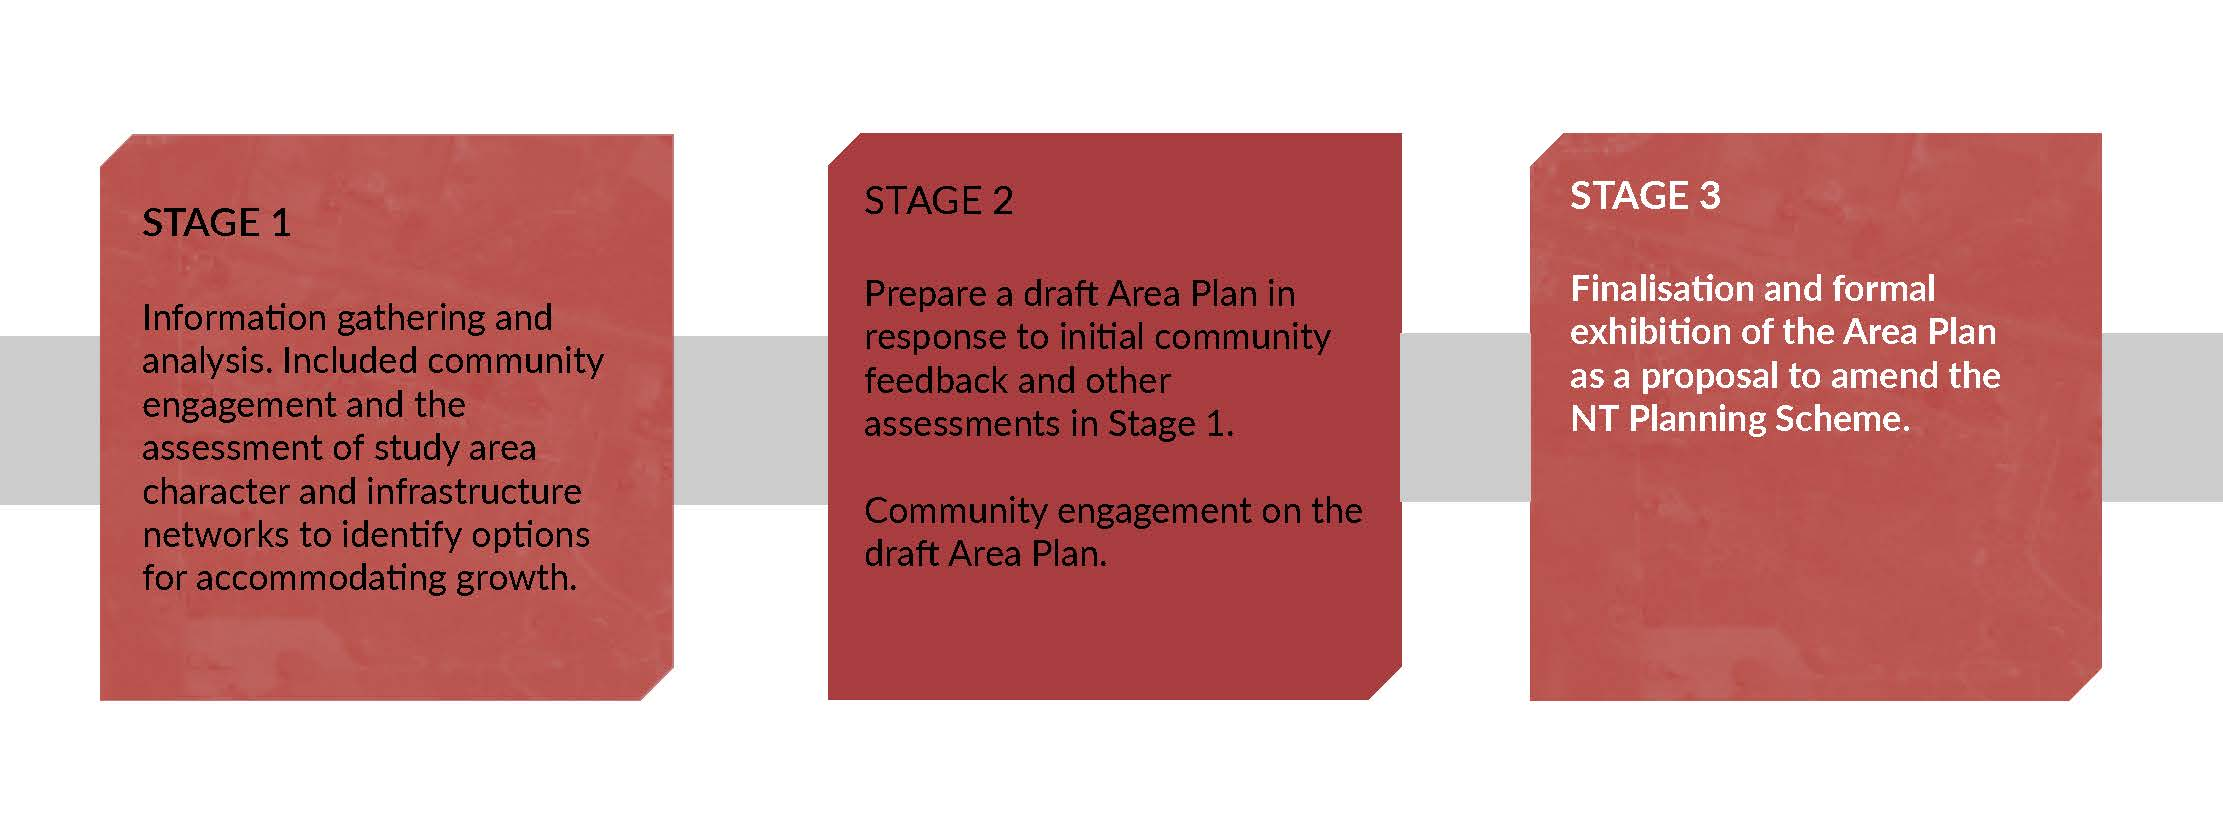 3 stage process image. Stage 3 is highlighted as the current stage